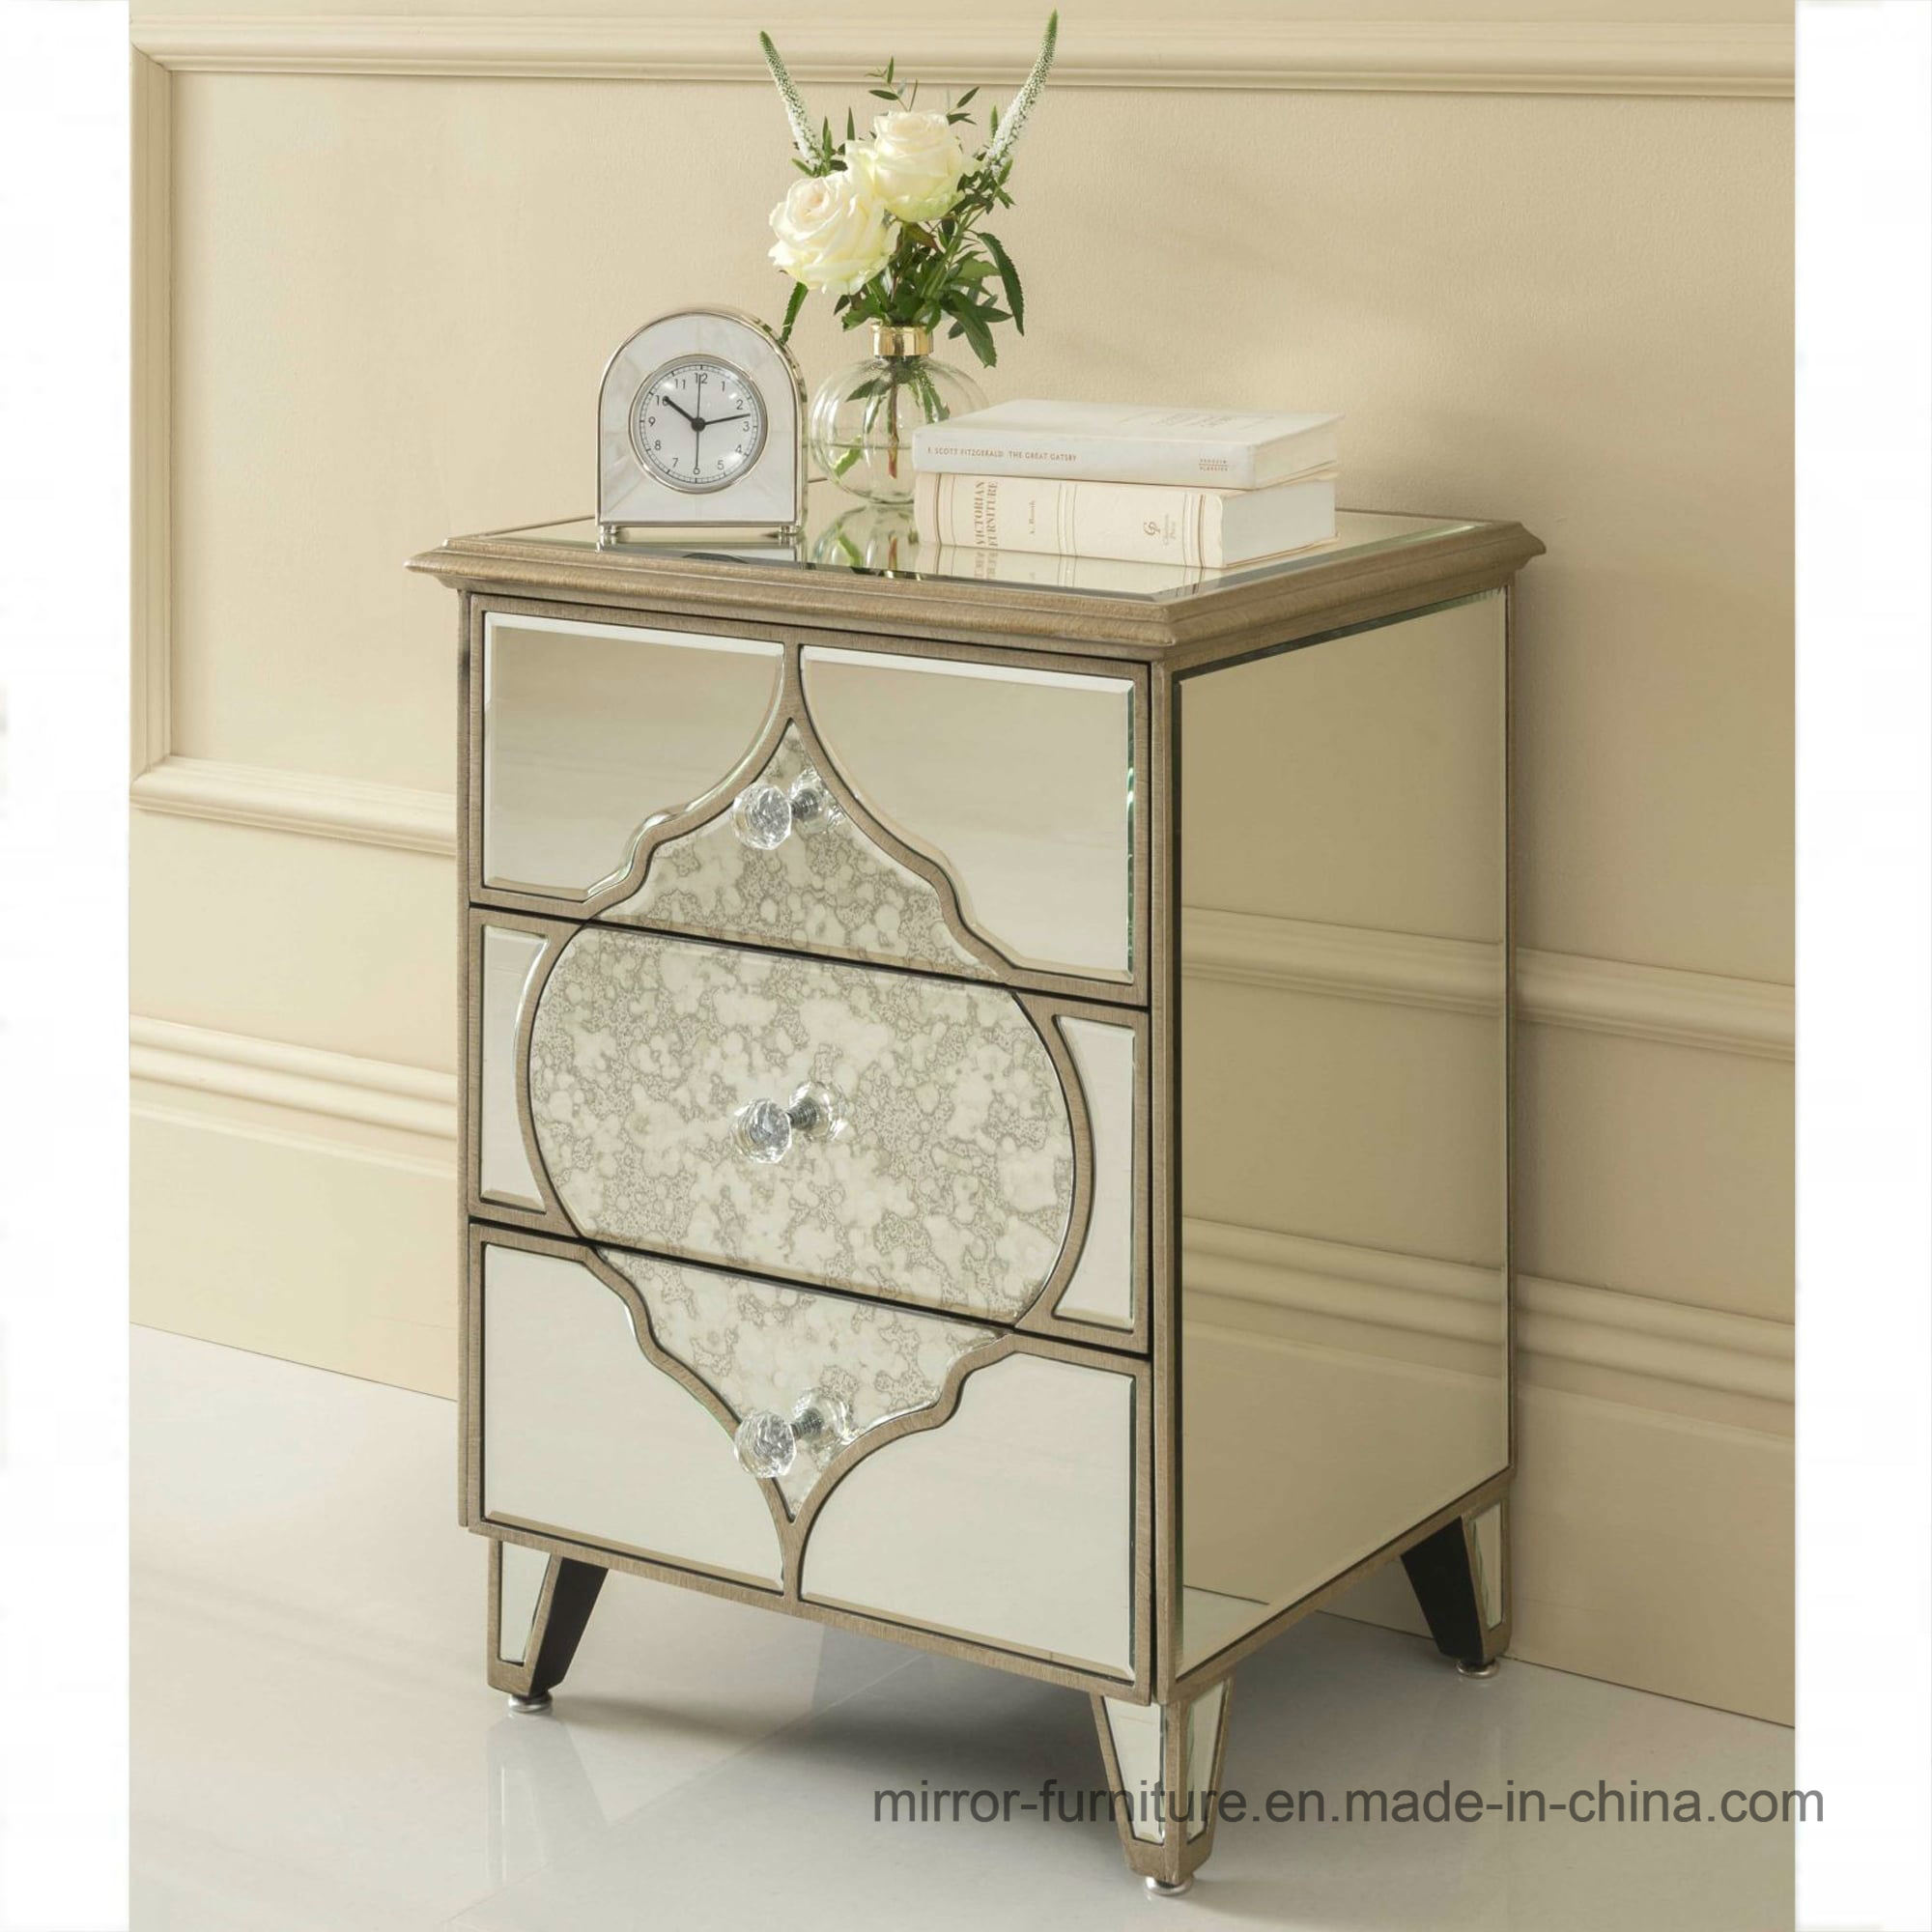 Hot Item Antique Golden Line Mirrored Side Table Bedroom Night Stand